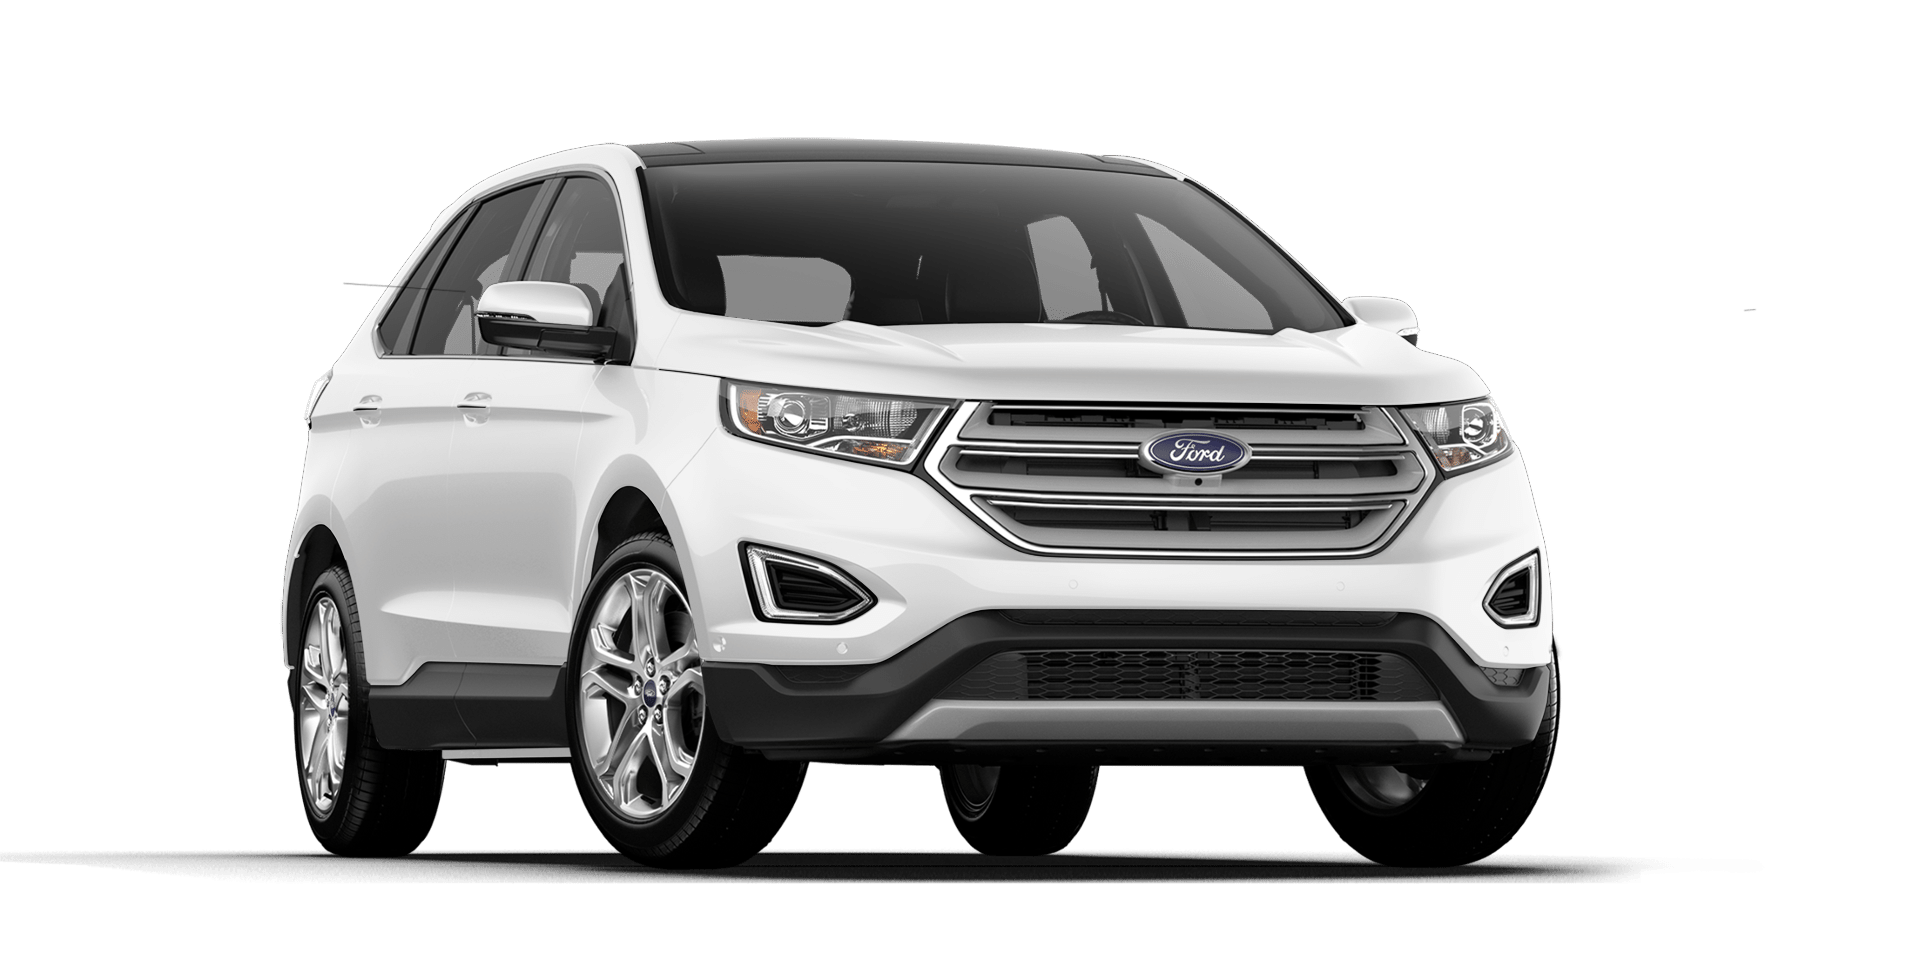 2017 Ford Edge Build Price Ford Edge Ford Ford Edge Suv